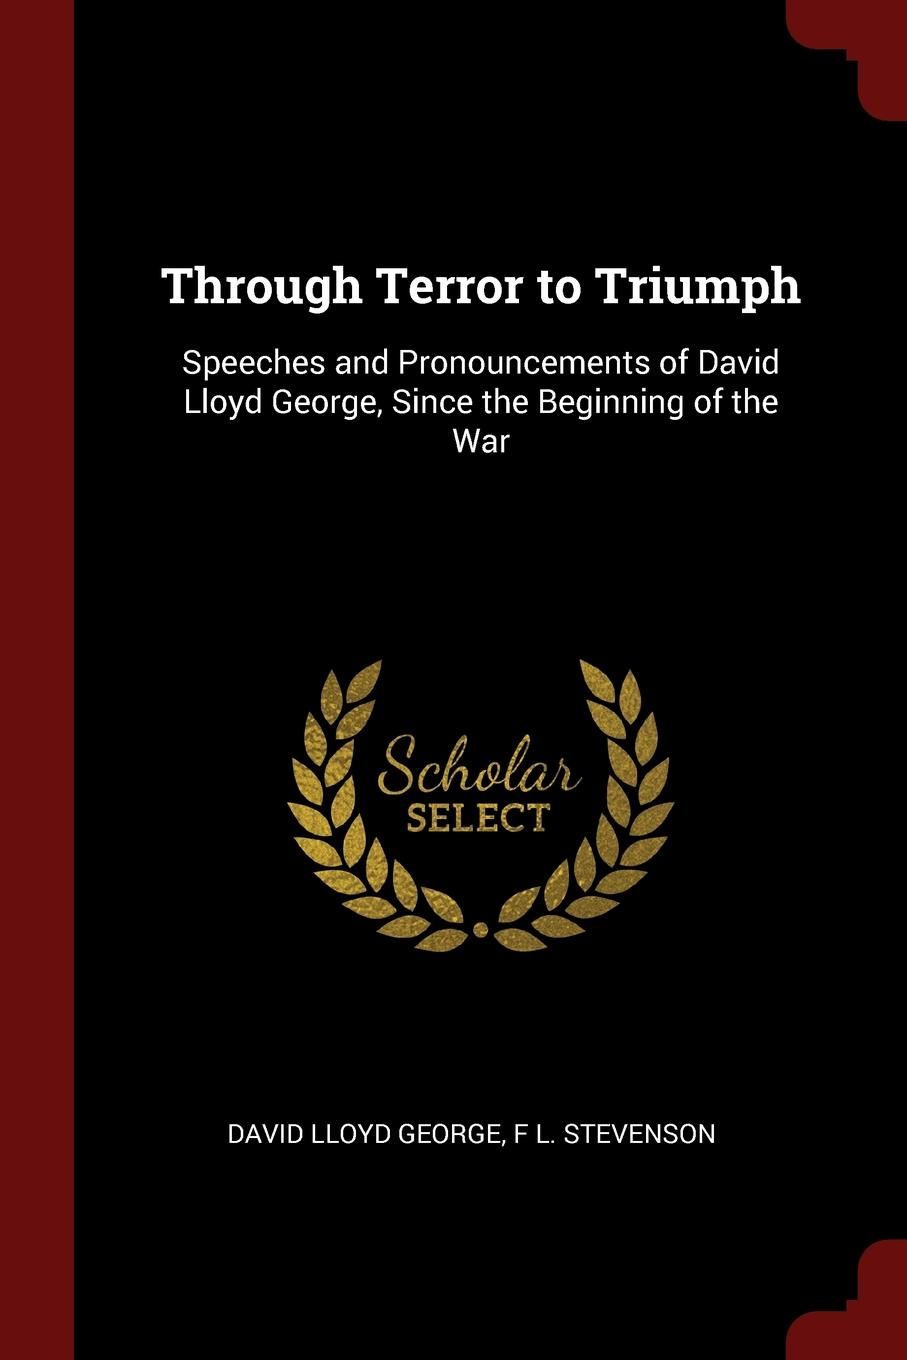 Through Terror to Triumph. Speeches and Pronouncements of David Lloyd George, Since the Beginning of the War